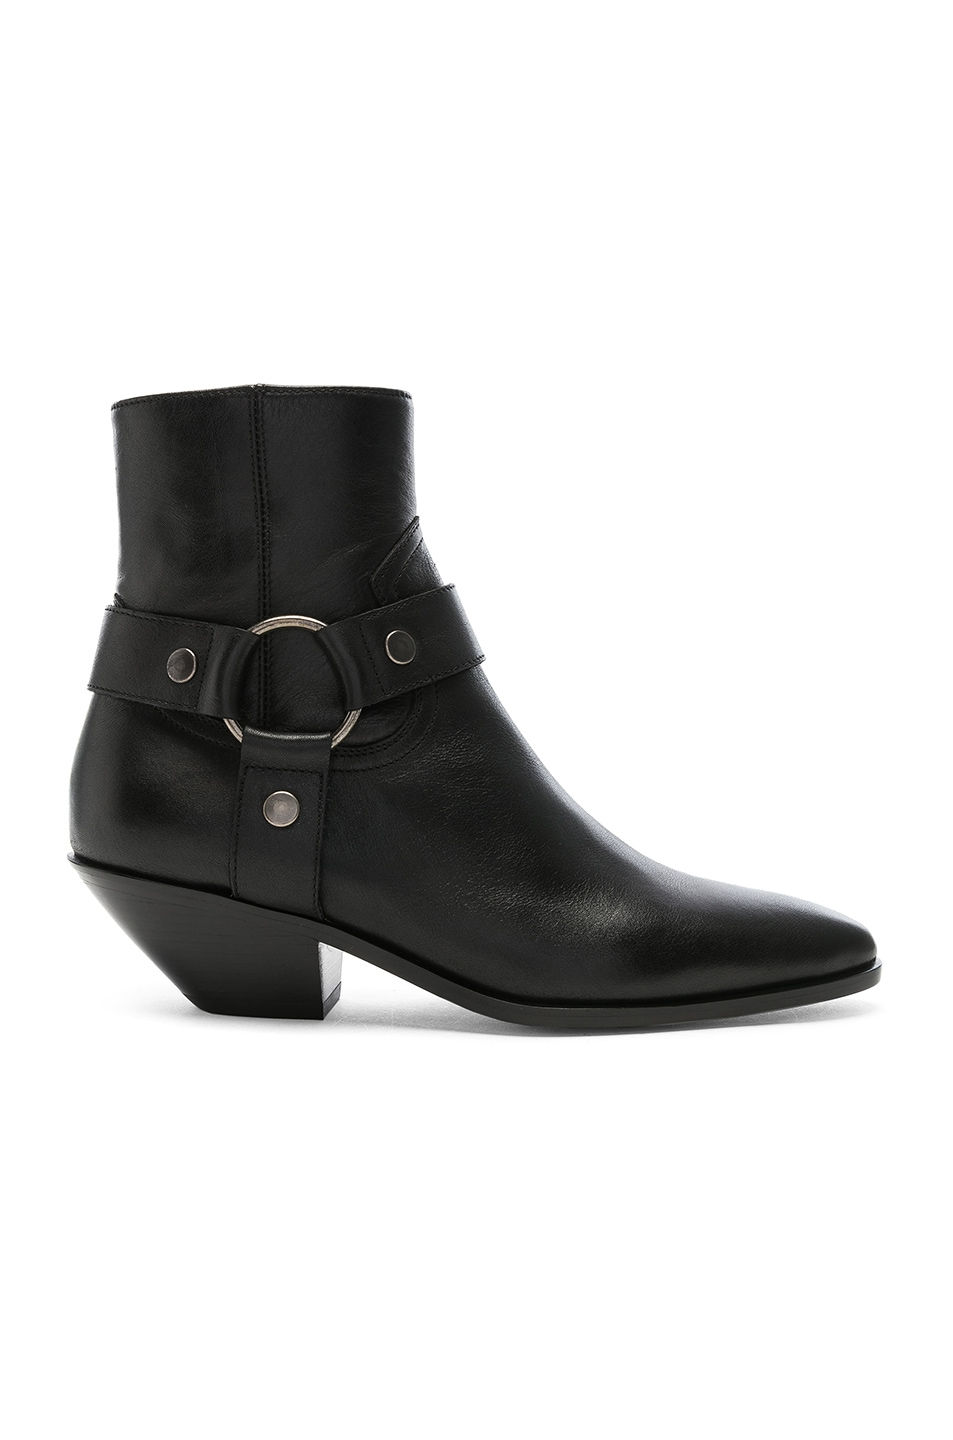 Image 1 of Saint Laurent West Strap Ankle Boots in Black